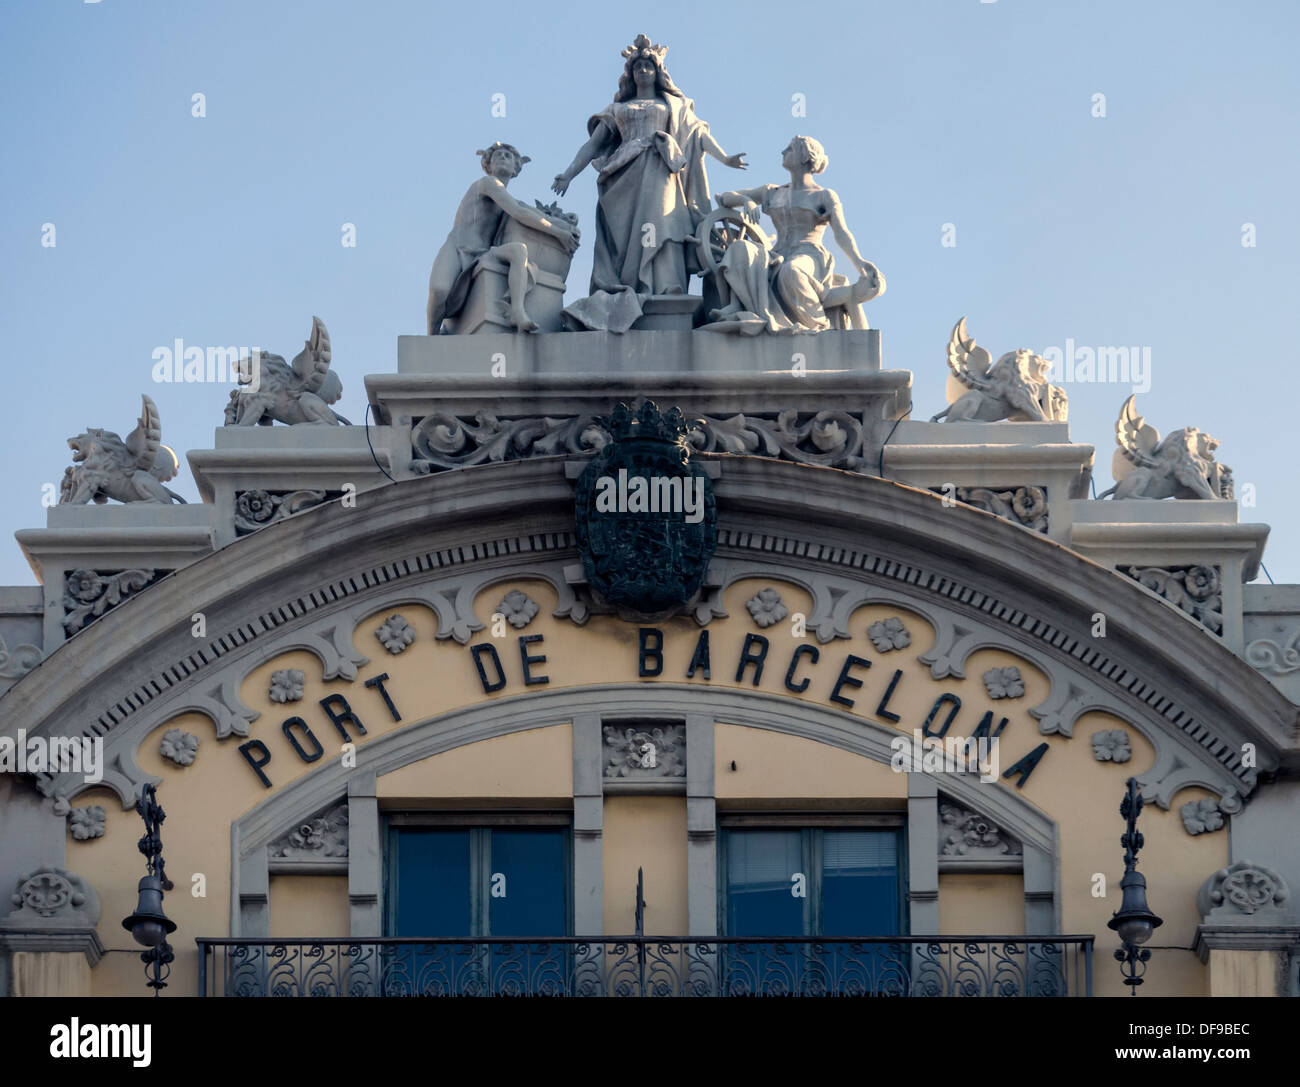 Detail on the facade of the Old Port Authority Building in Port Vell, Barcelona - Stock Image